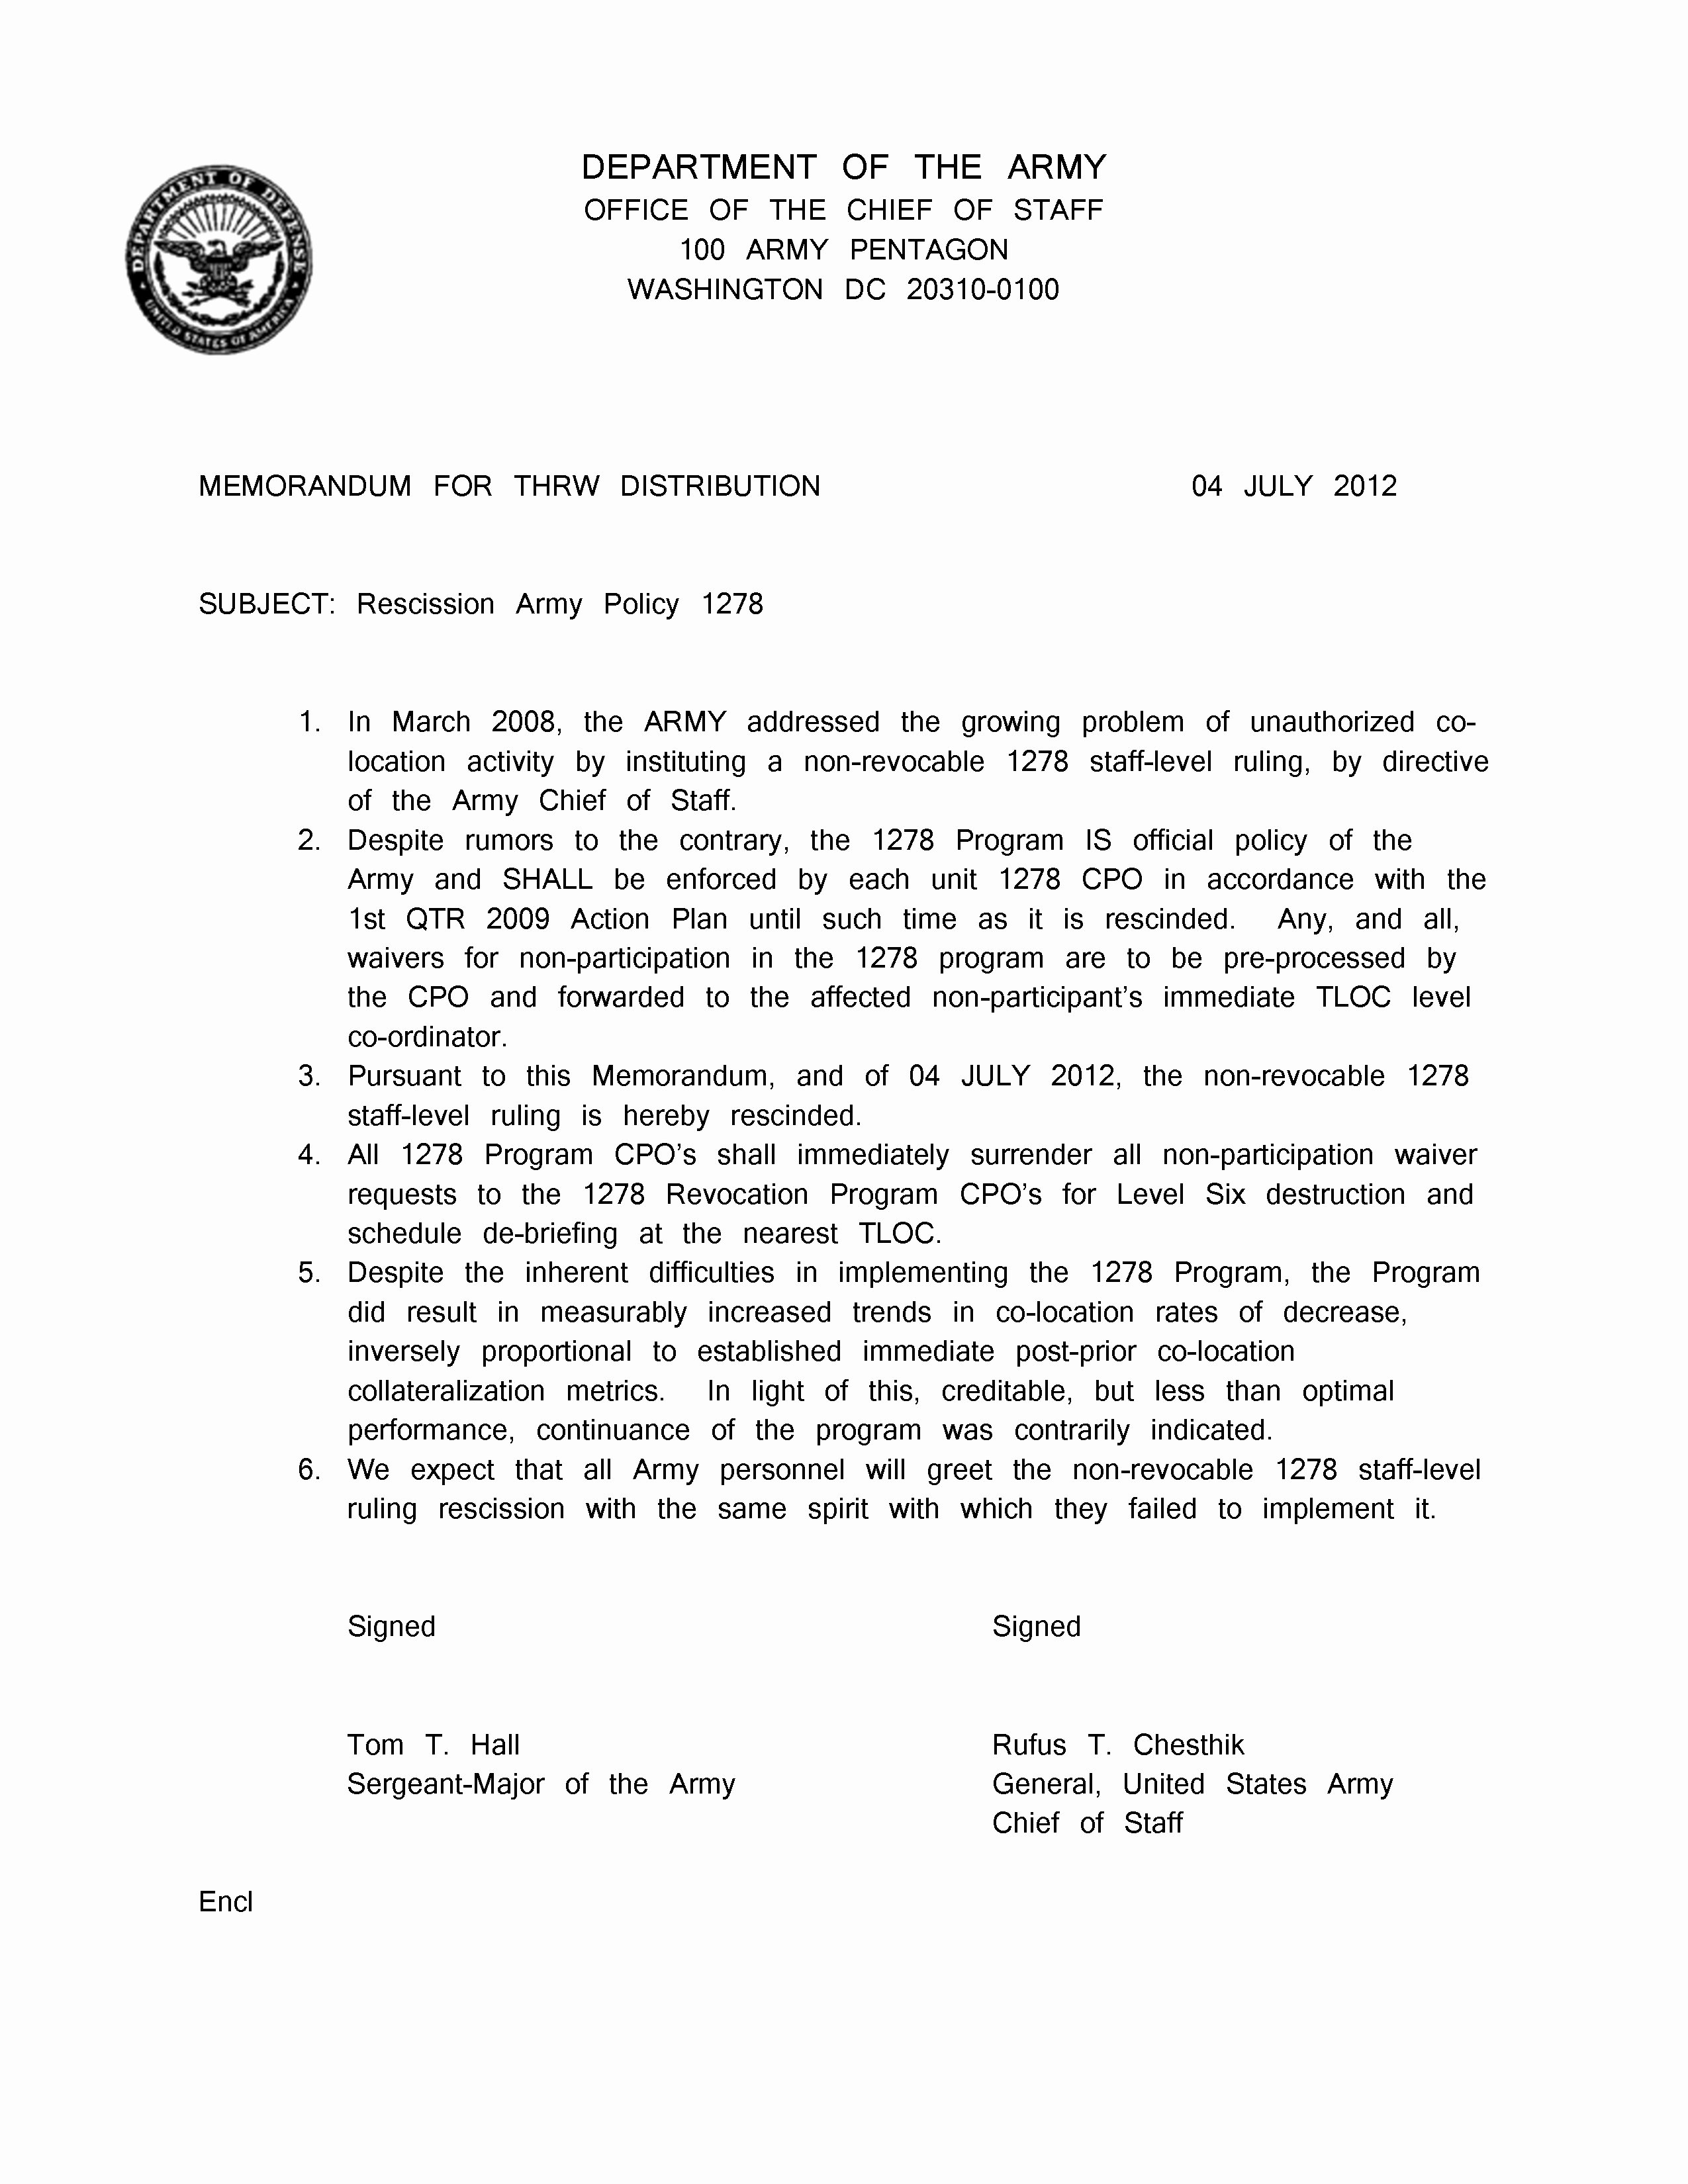 Army Memorandum for Record Template New Best S Of Army Memorandum Template Army Memorandum